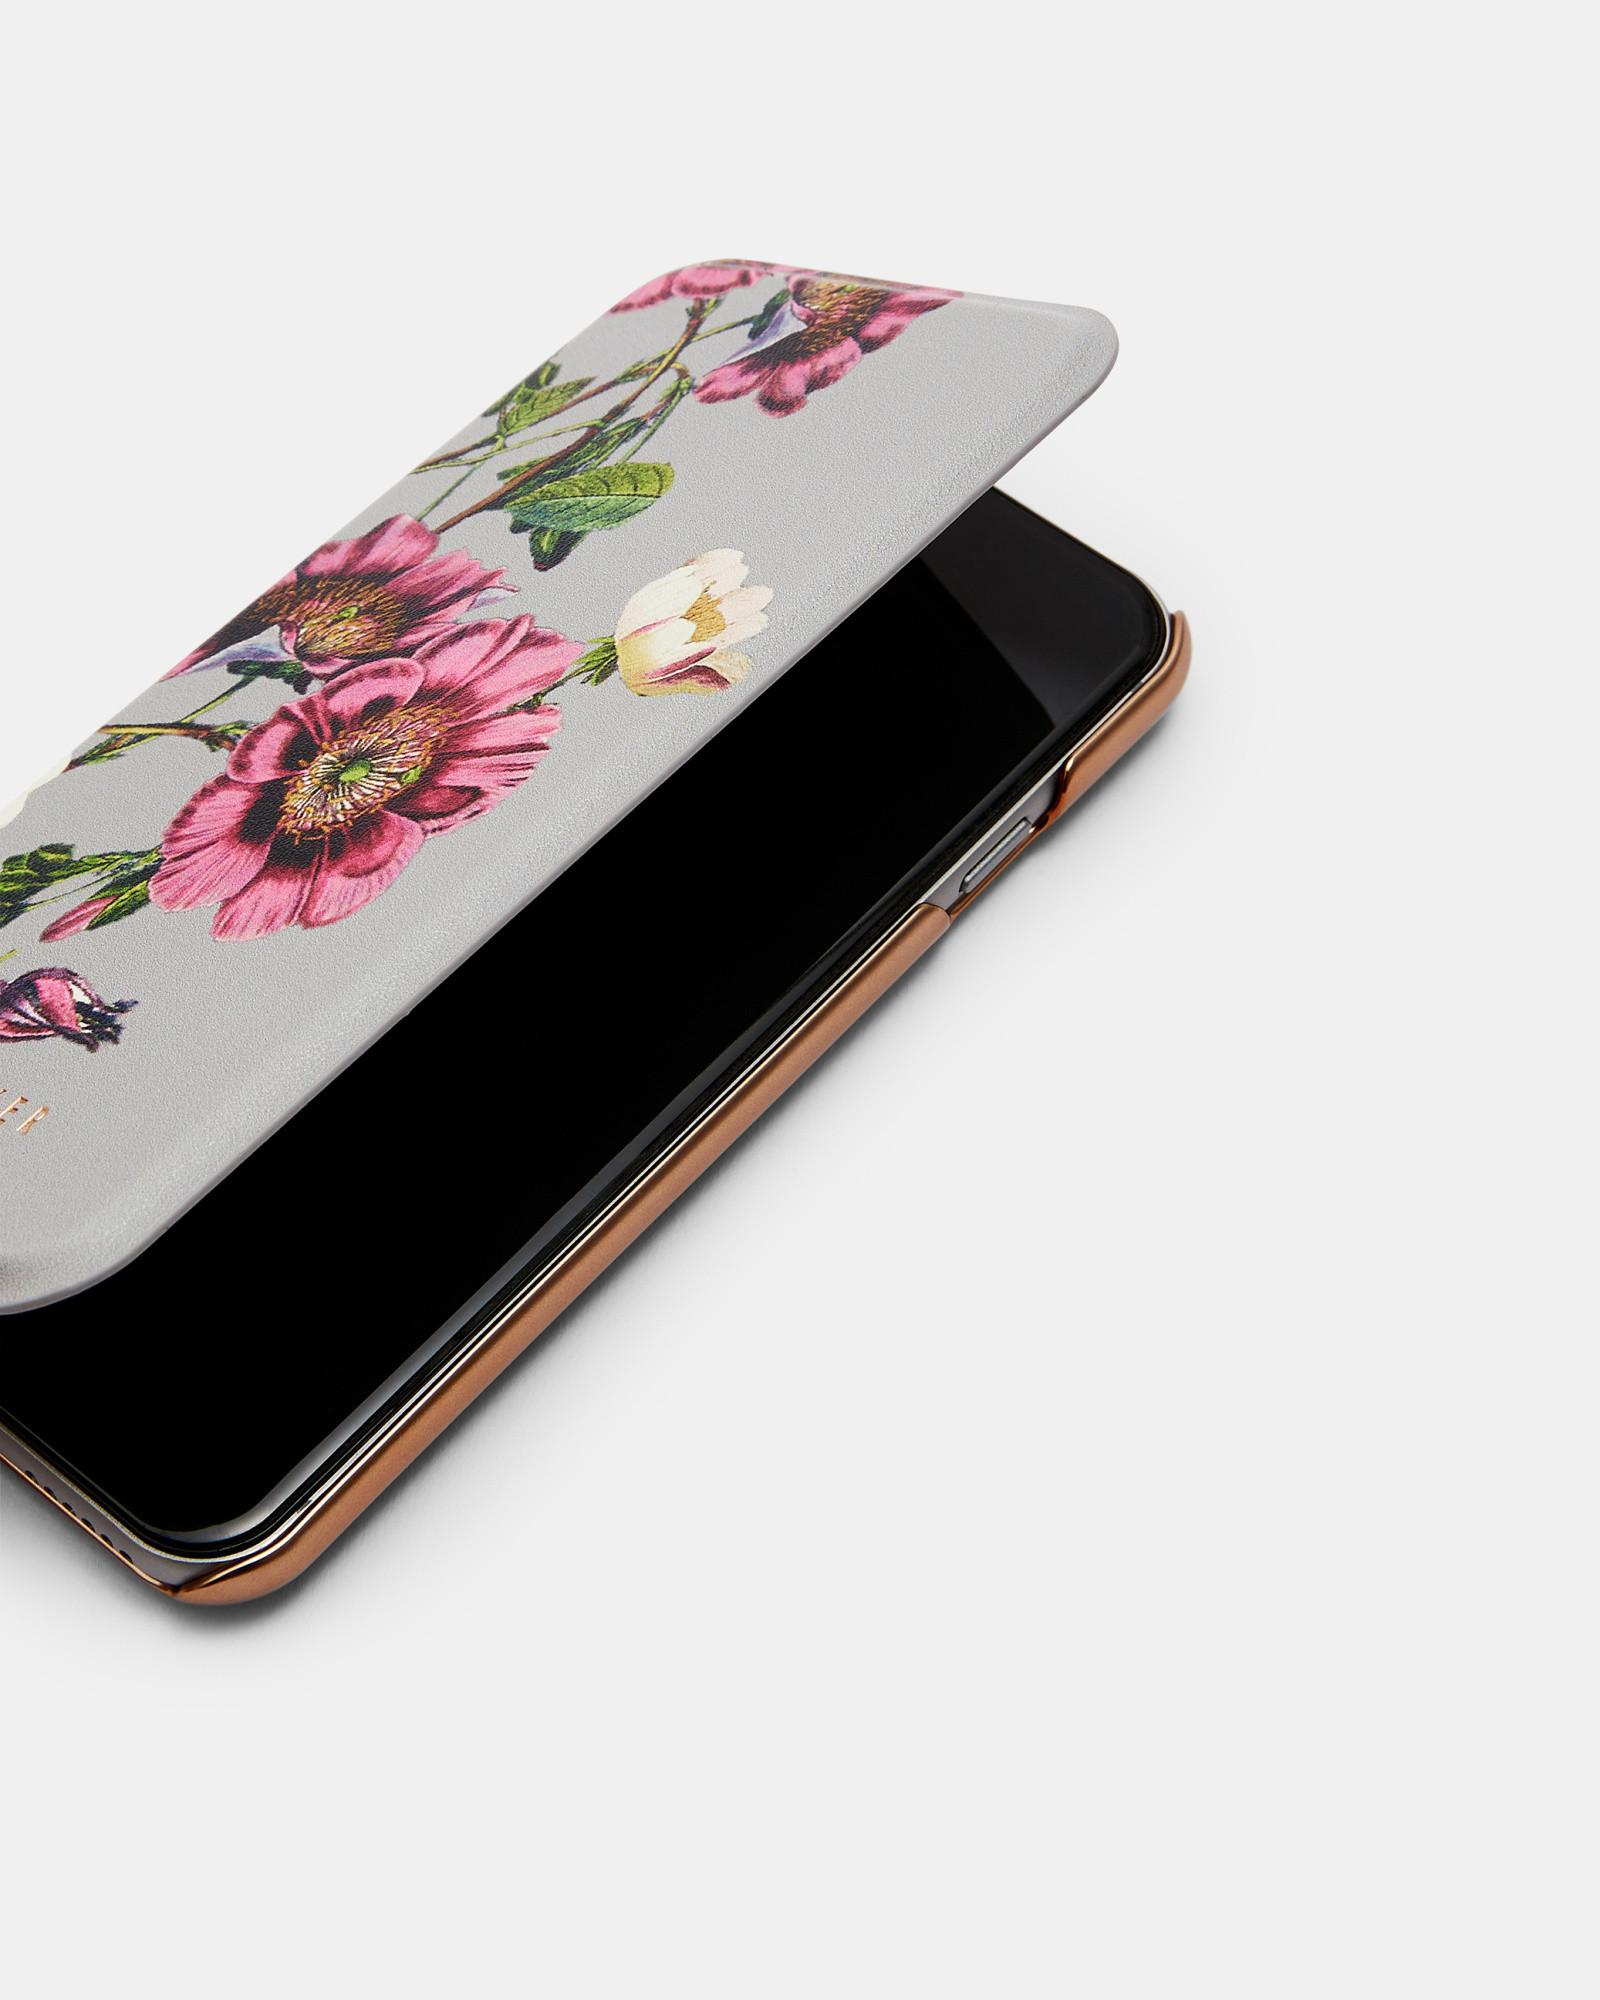 279457e64 Ted Baker Oracle Iphone 6 6s 7 8 Plus Mirror Case in Gray - Lyst